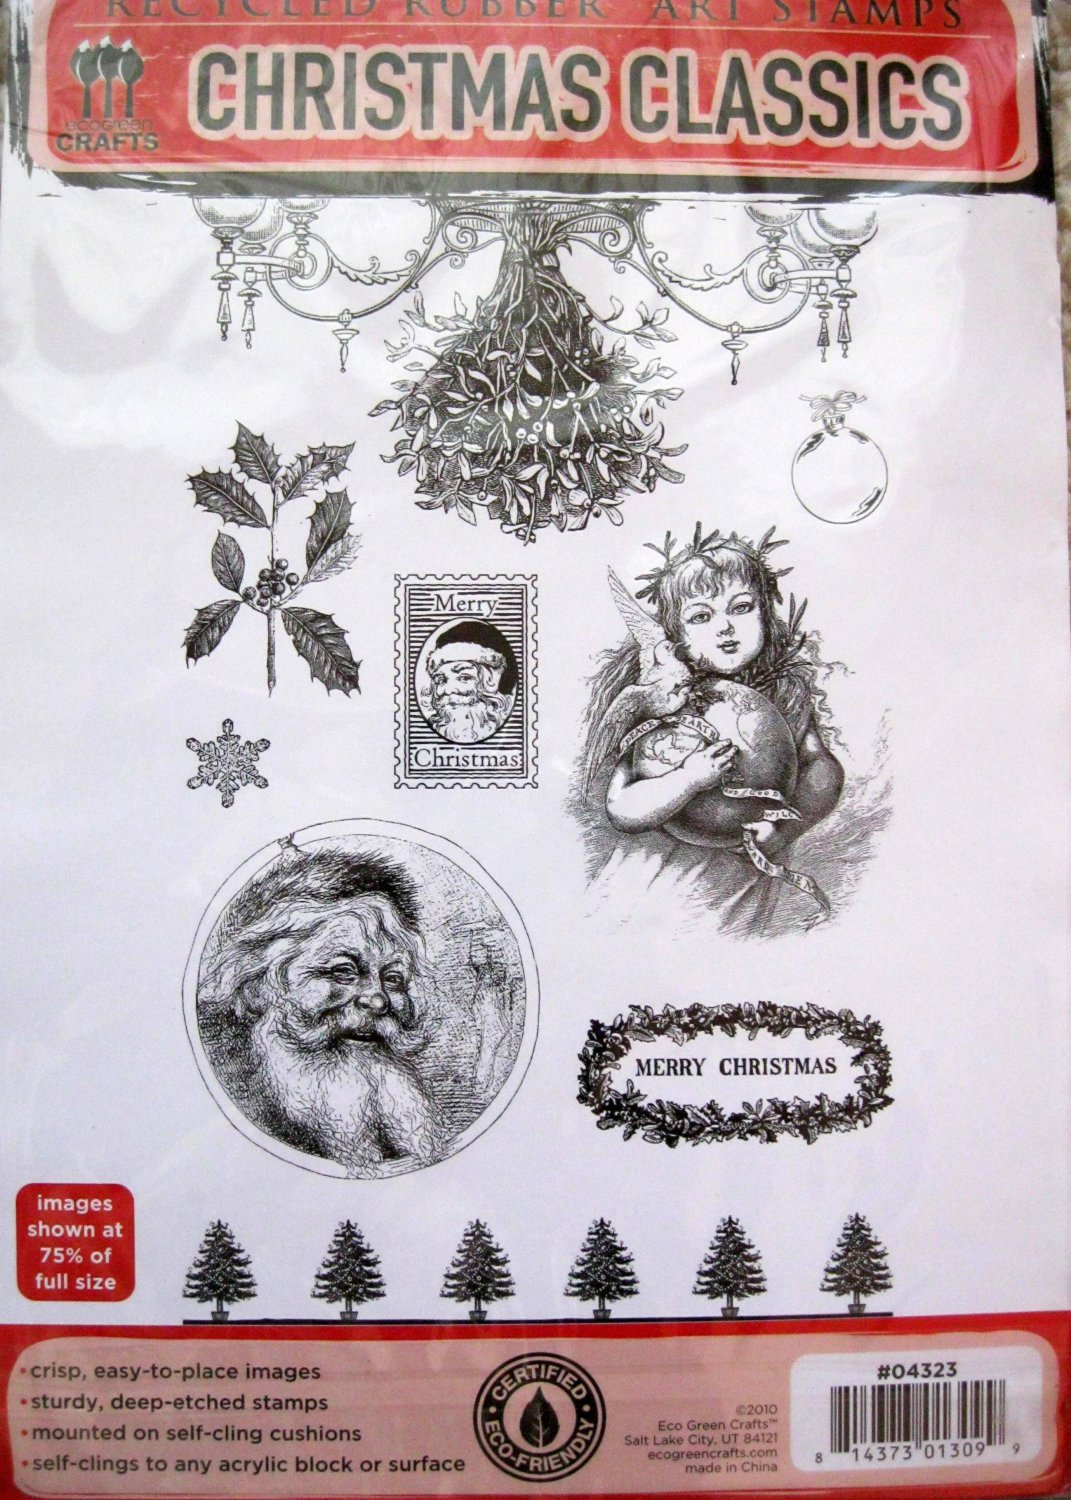 Eco Green Rubber Stamps Christmas Classics